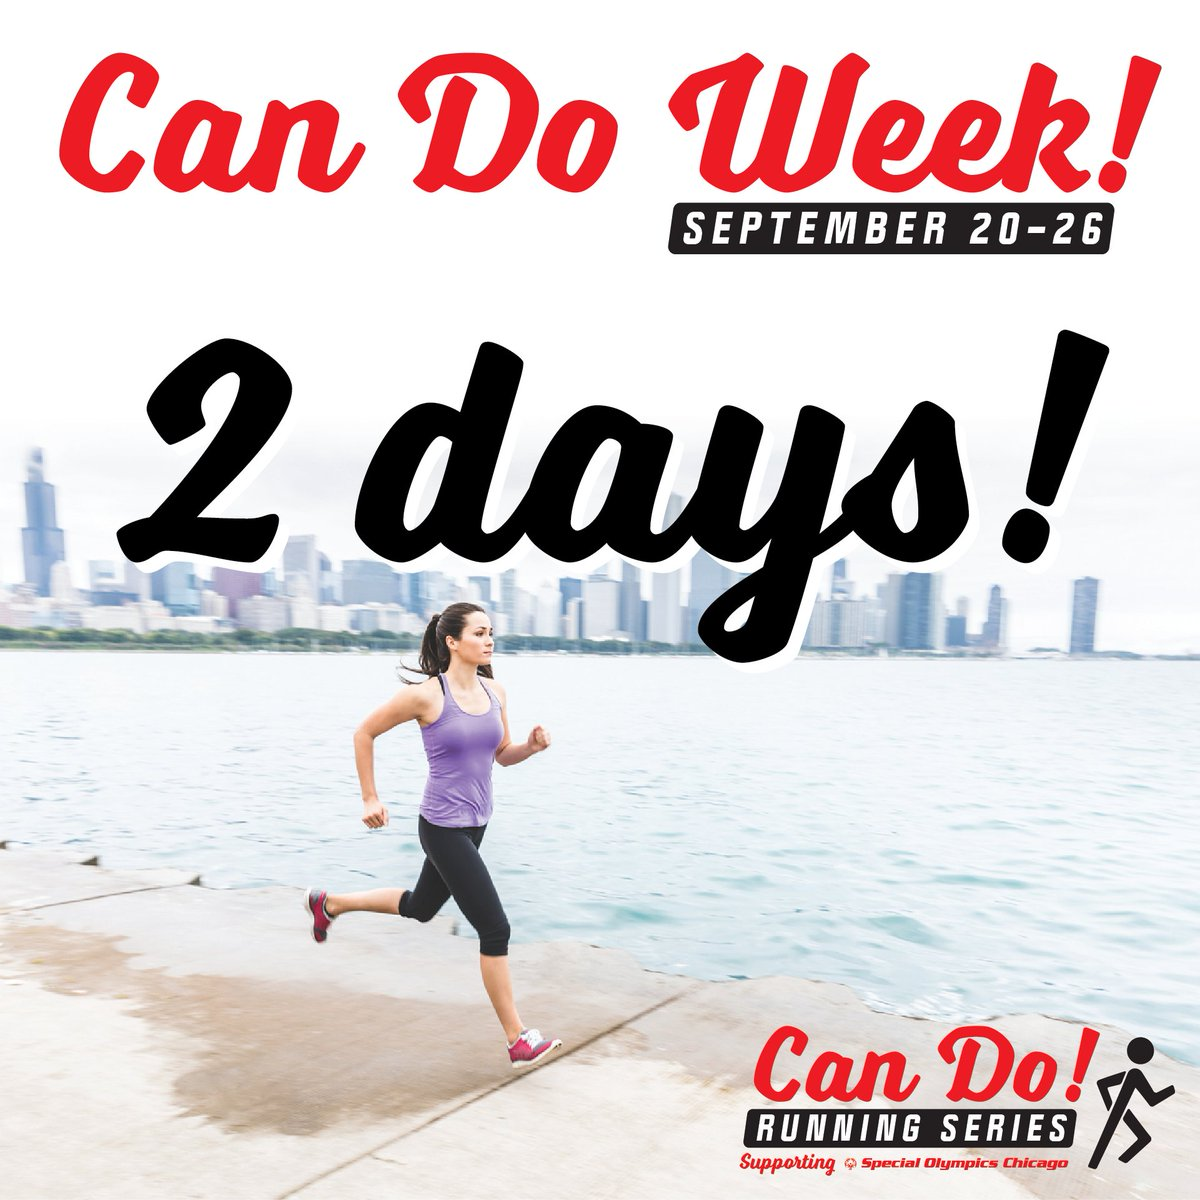 2 days until Can Do Week! Sign up for the #CanDoRunningSeries, run a virtual race, and raise $100 by September 26 and you'll be eligible for great prizes like Aftershokz headphones, a Garmin Vivofit, or a Fleet Feet gift card! Register today at https://t.co/rouq0MwF7N https://t.co/foJcAnFvVK